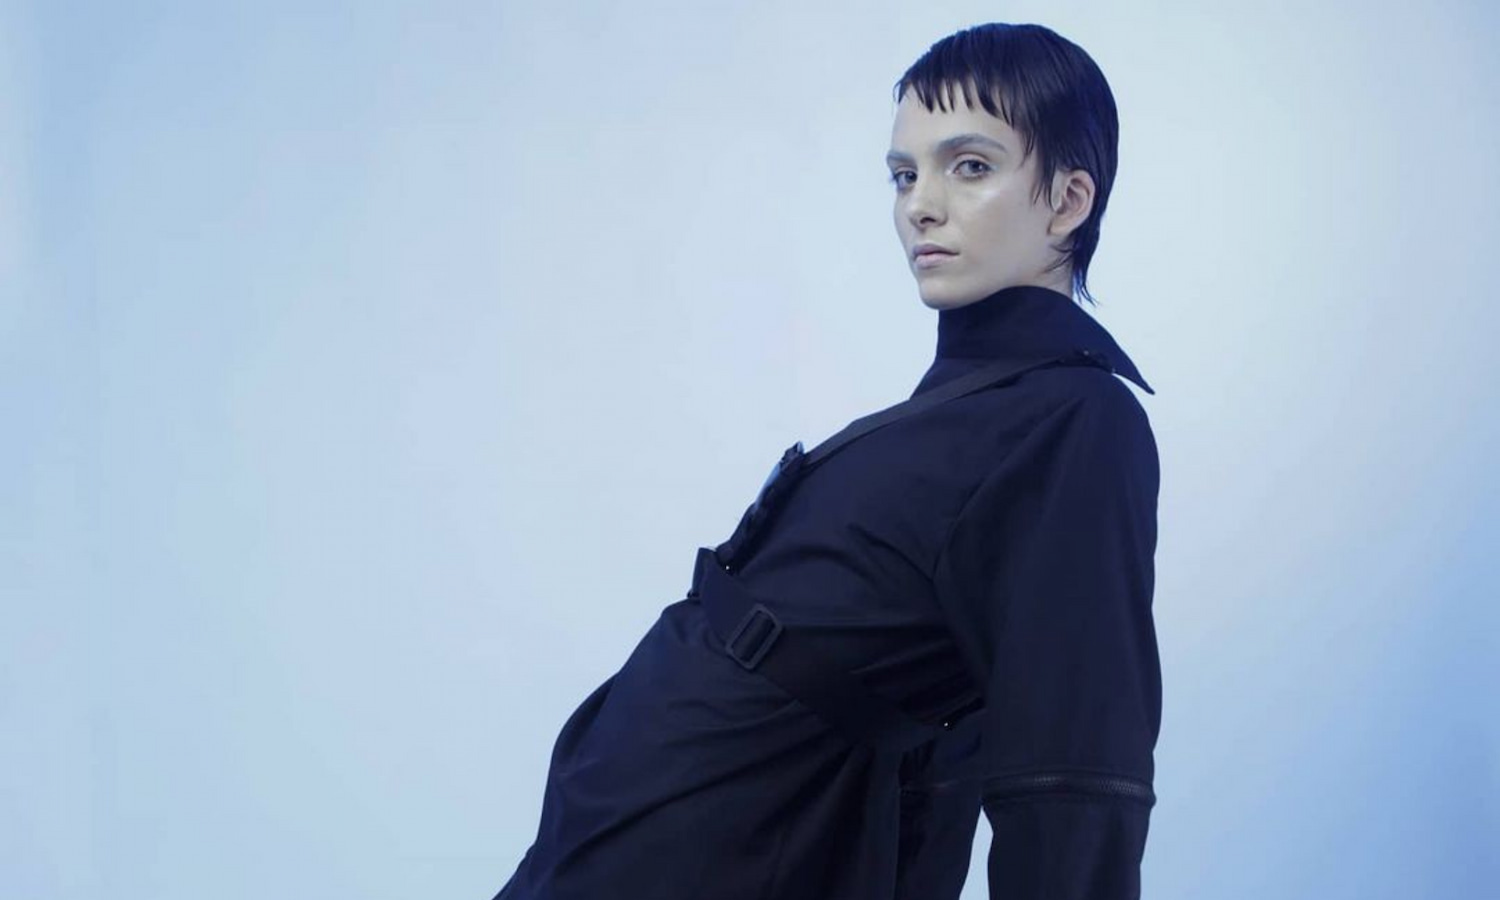 A Minimalist genderless clothing for urban nomads